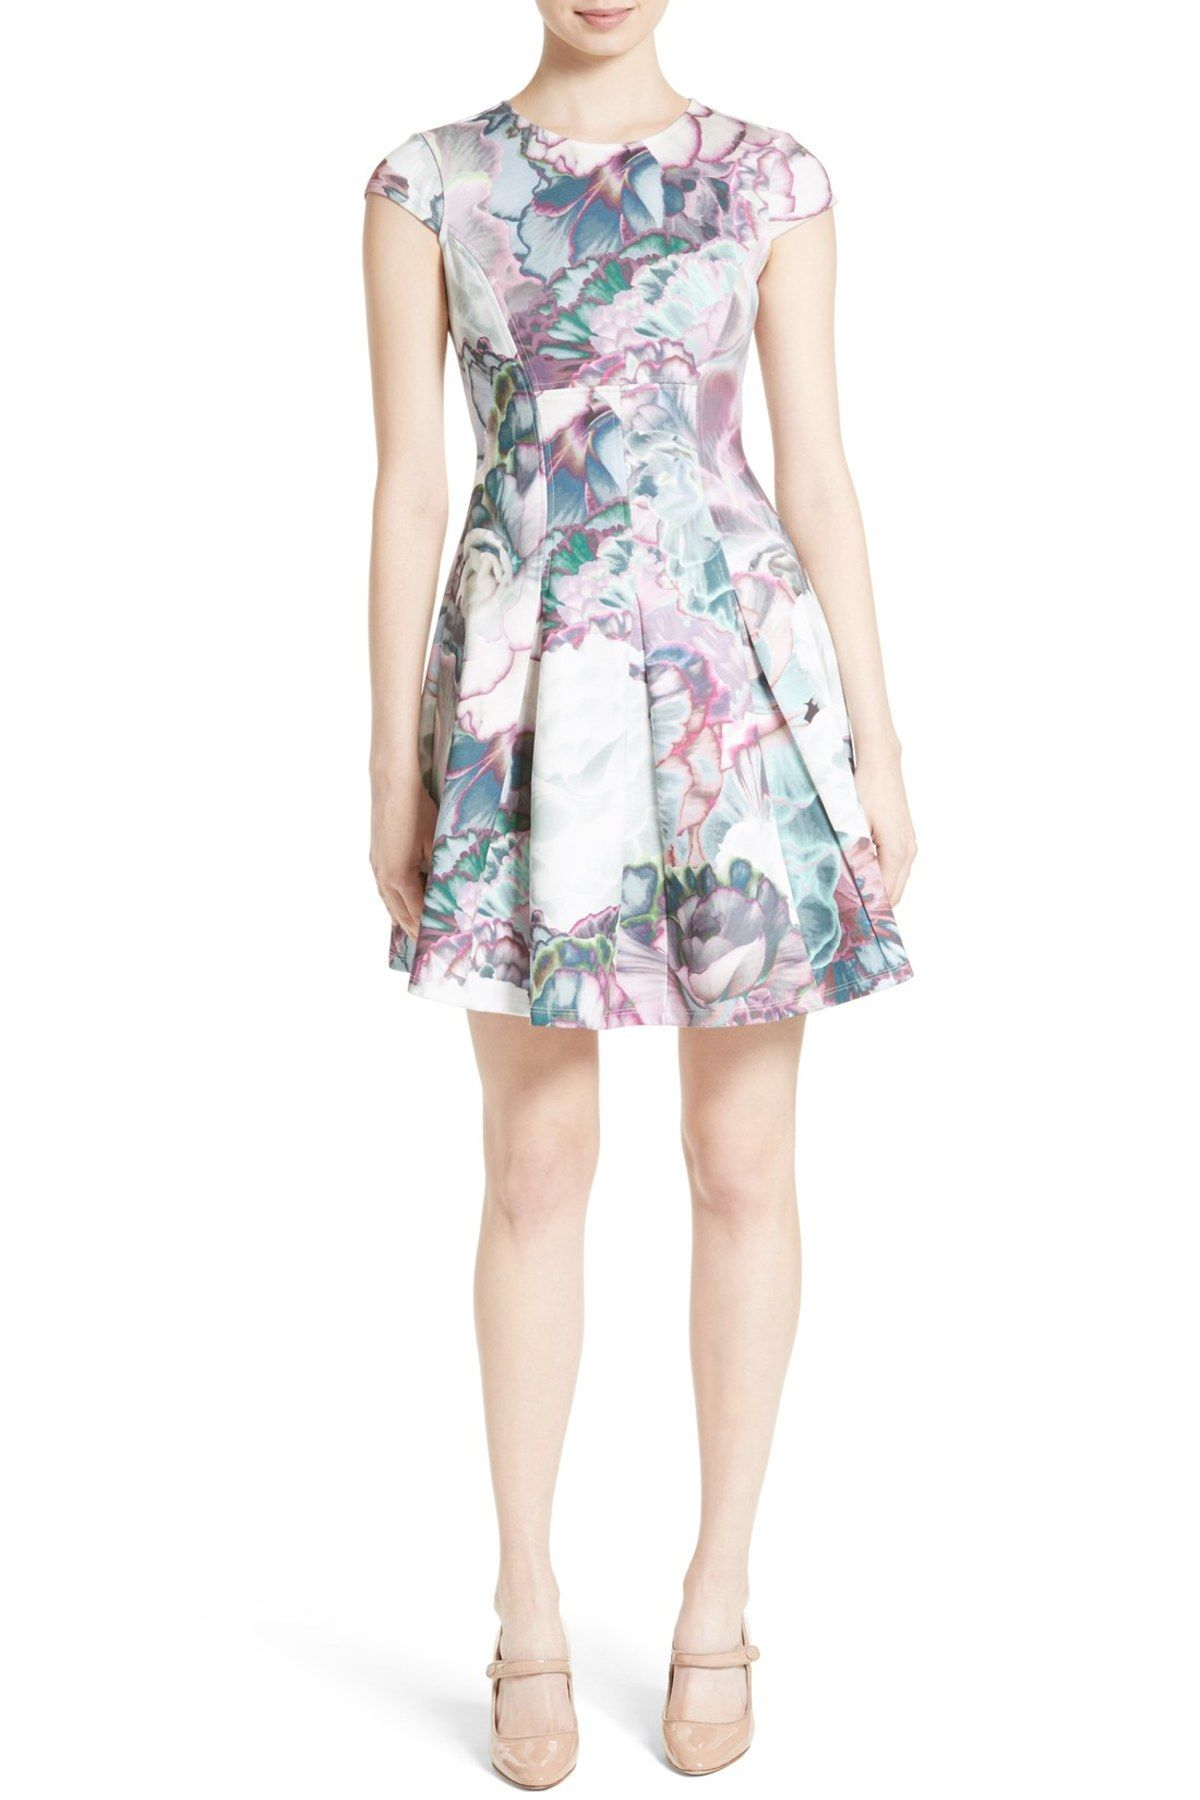 Wedding dresses in london shops  Mah Skater Dress by Ted Baker London on HauteLook  Dresses